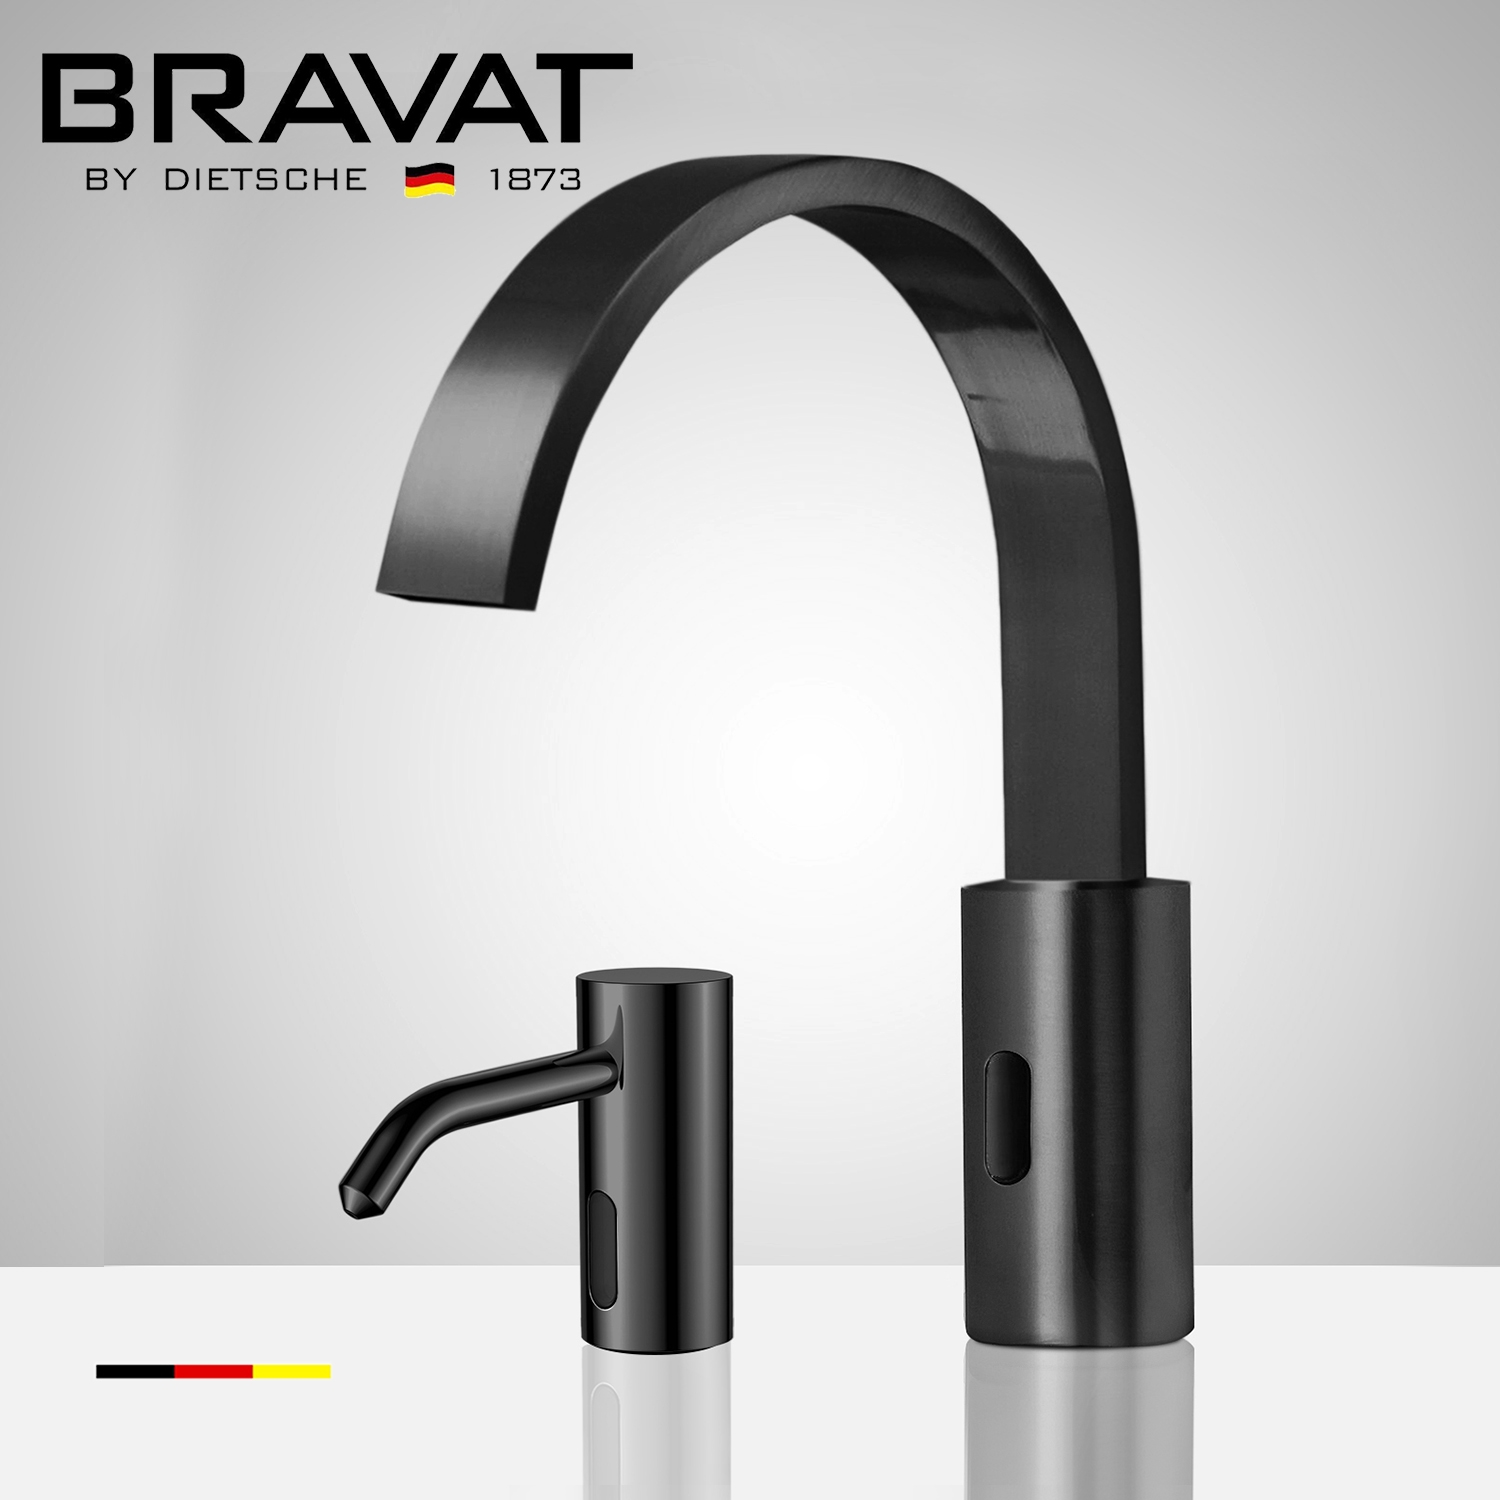 Fontana Dark Oil Rubbed Bronze Commercial Motion Sensor Faucet & Automatic Liquid Foam Soap Dispenser for Restrooms